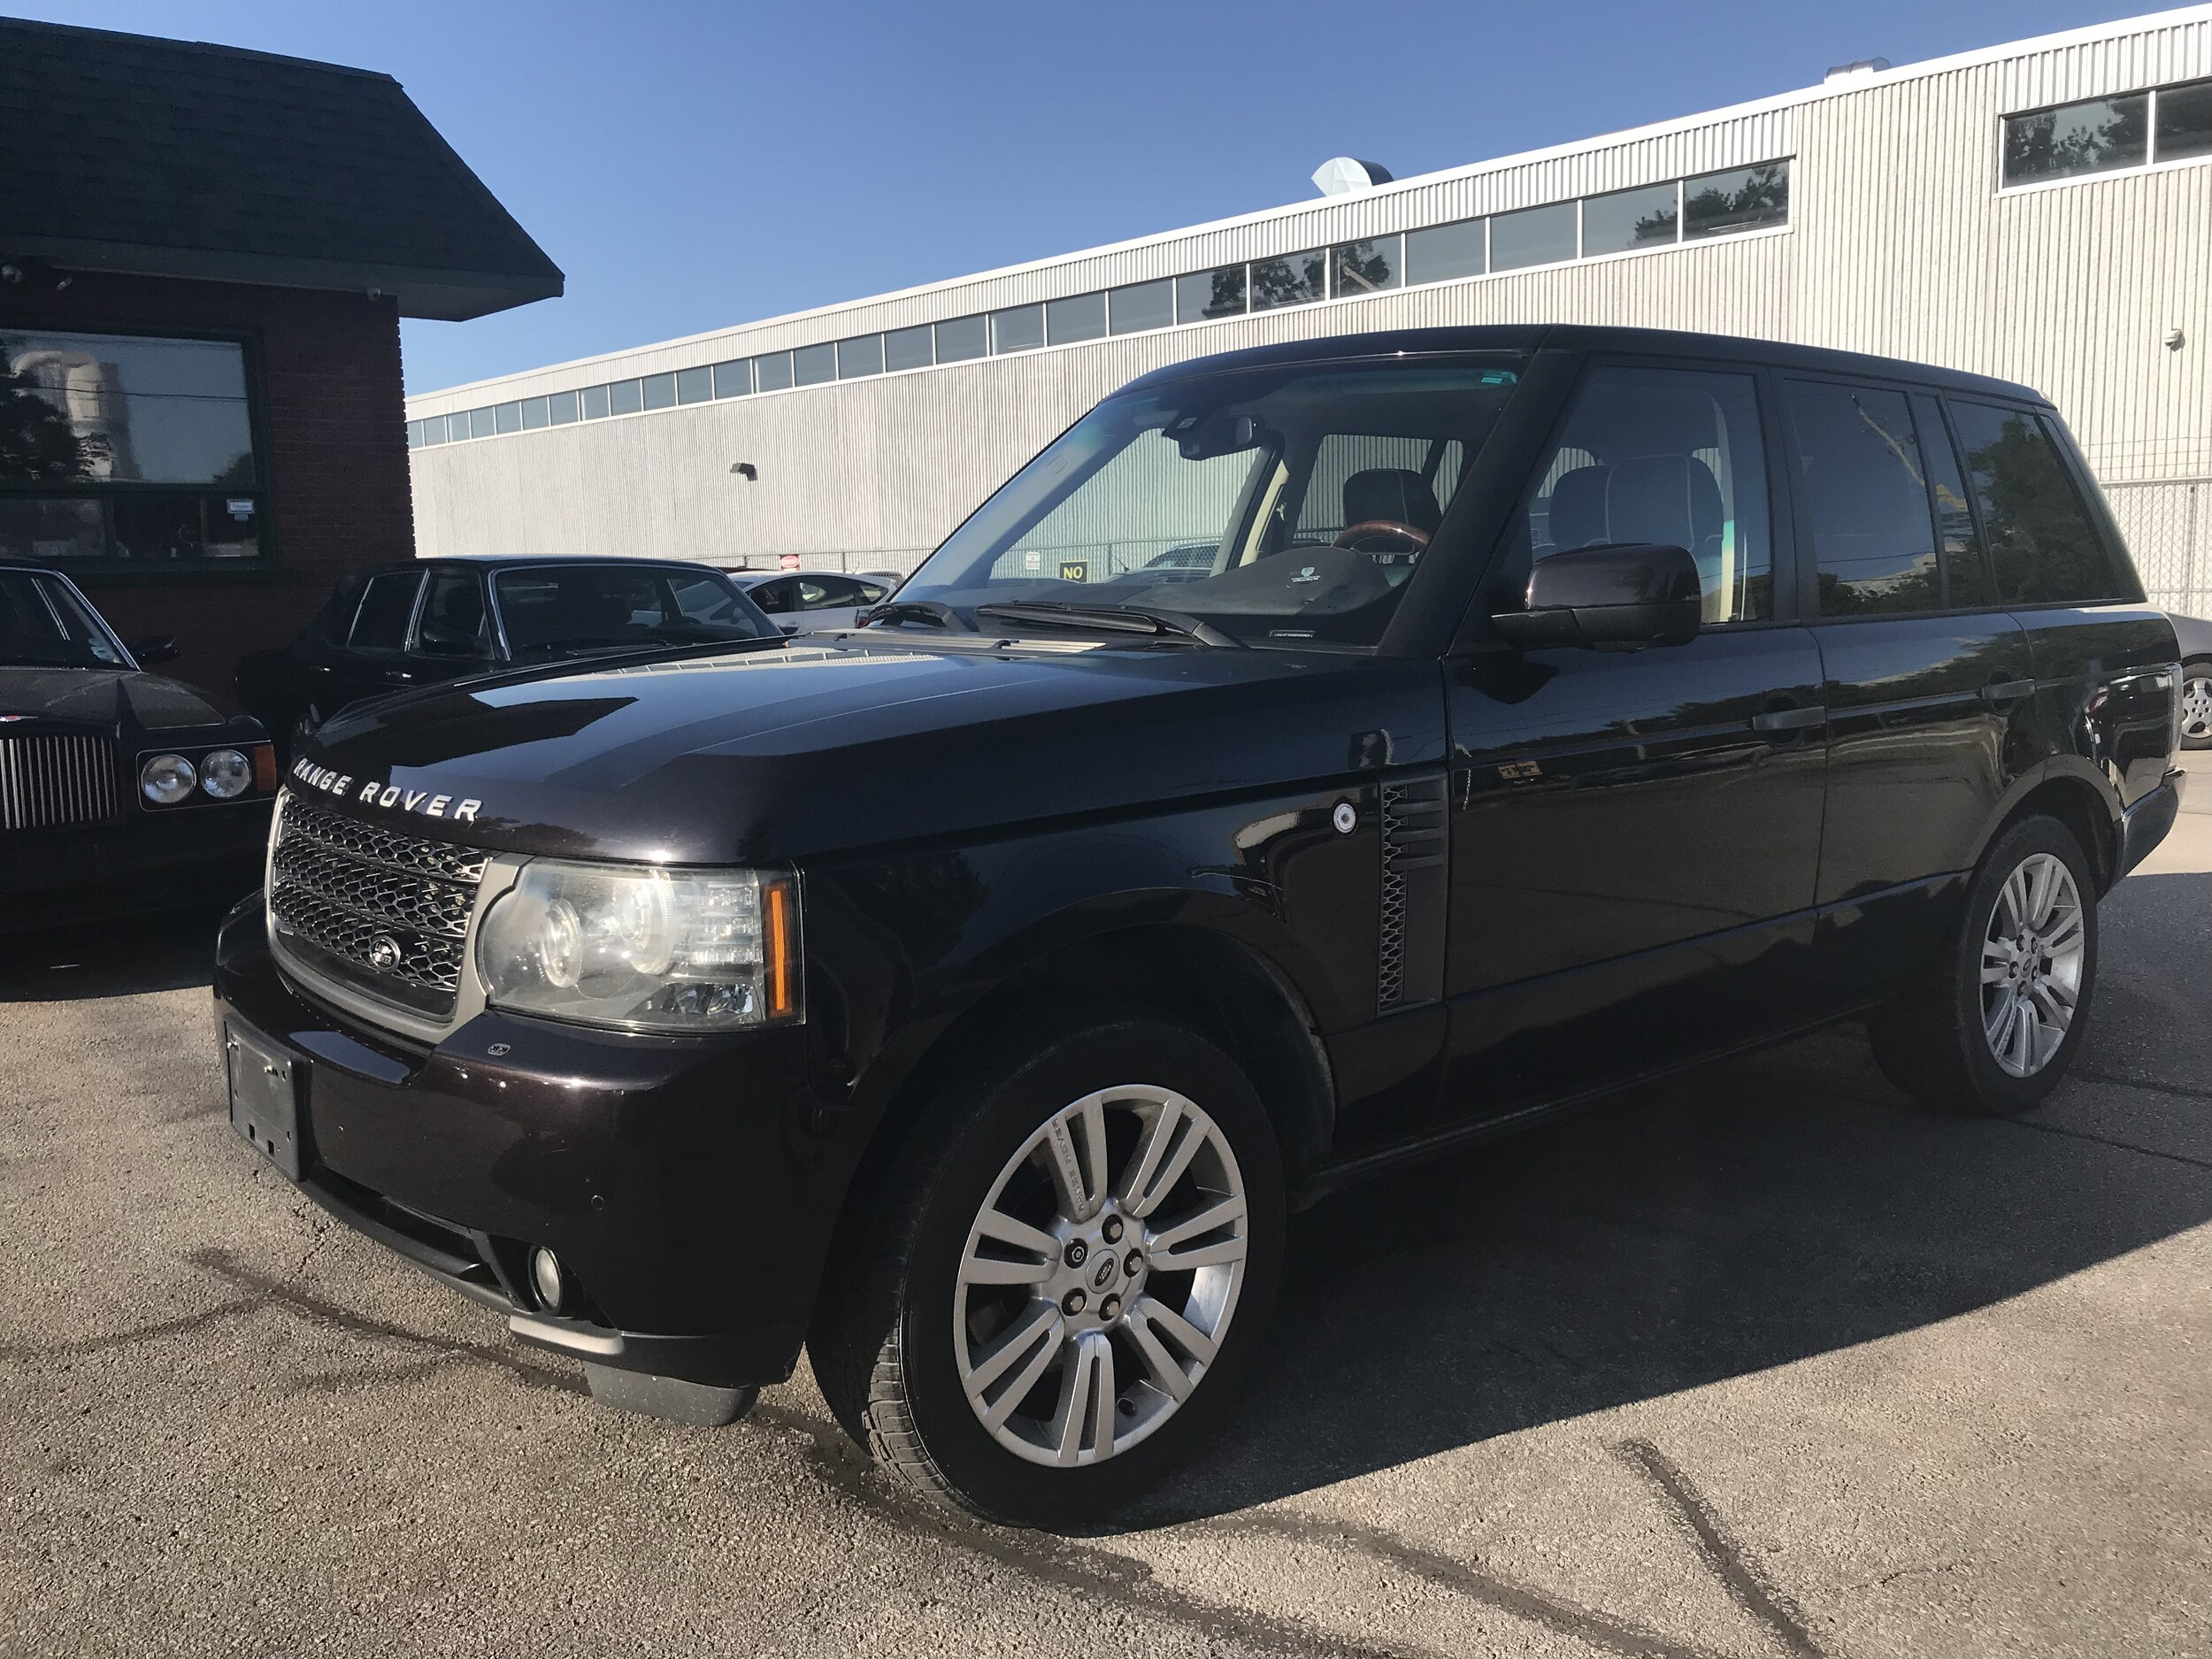 - 2011 Range Rover Hse$21,900 plus tax153,000 kmTop of the line Range Rover. Fully loaded with heated seats, Back up cameraNavigation and more.